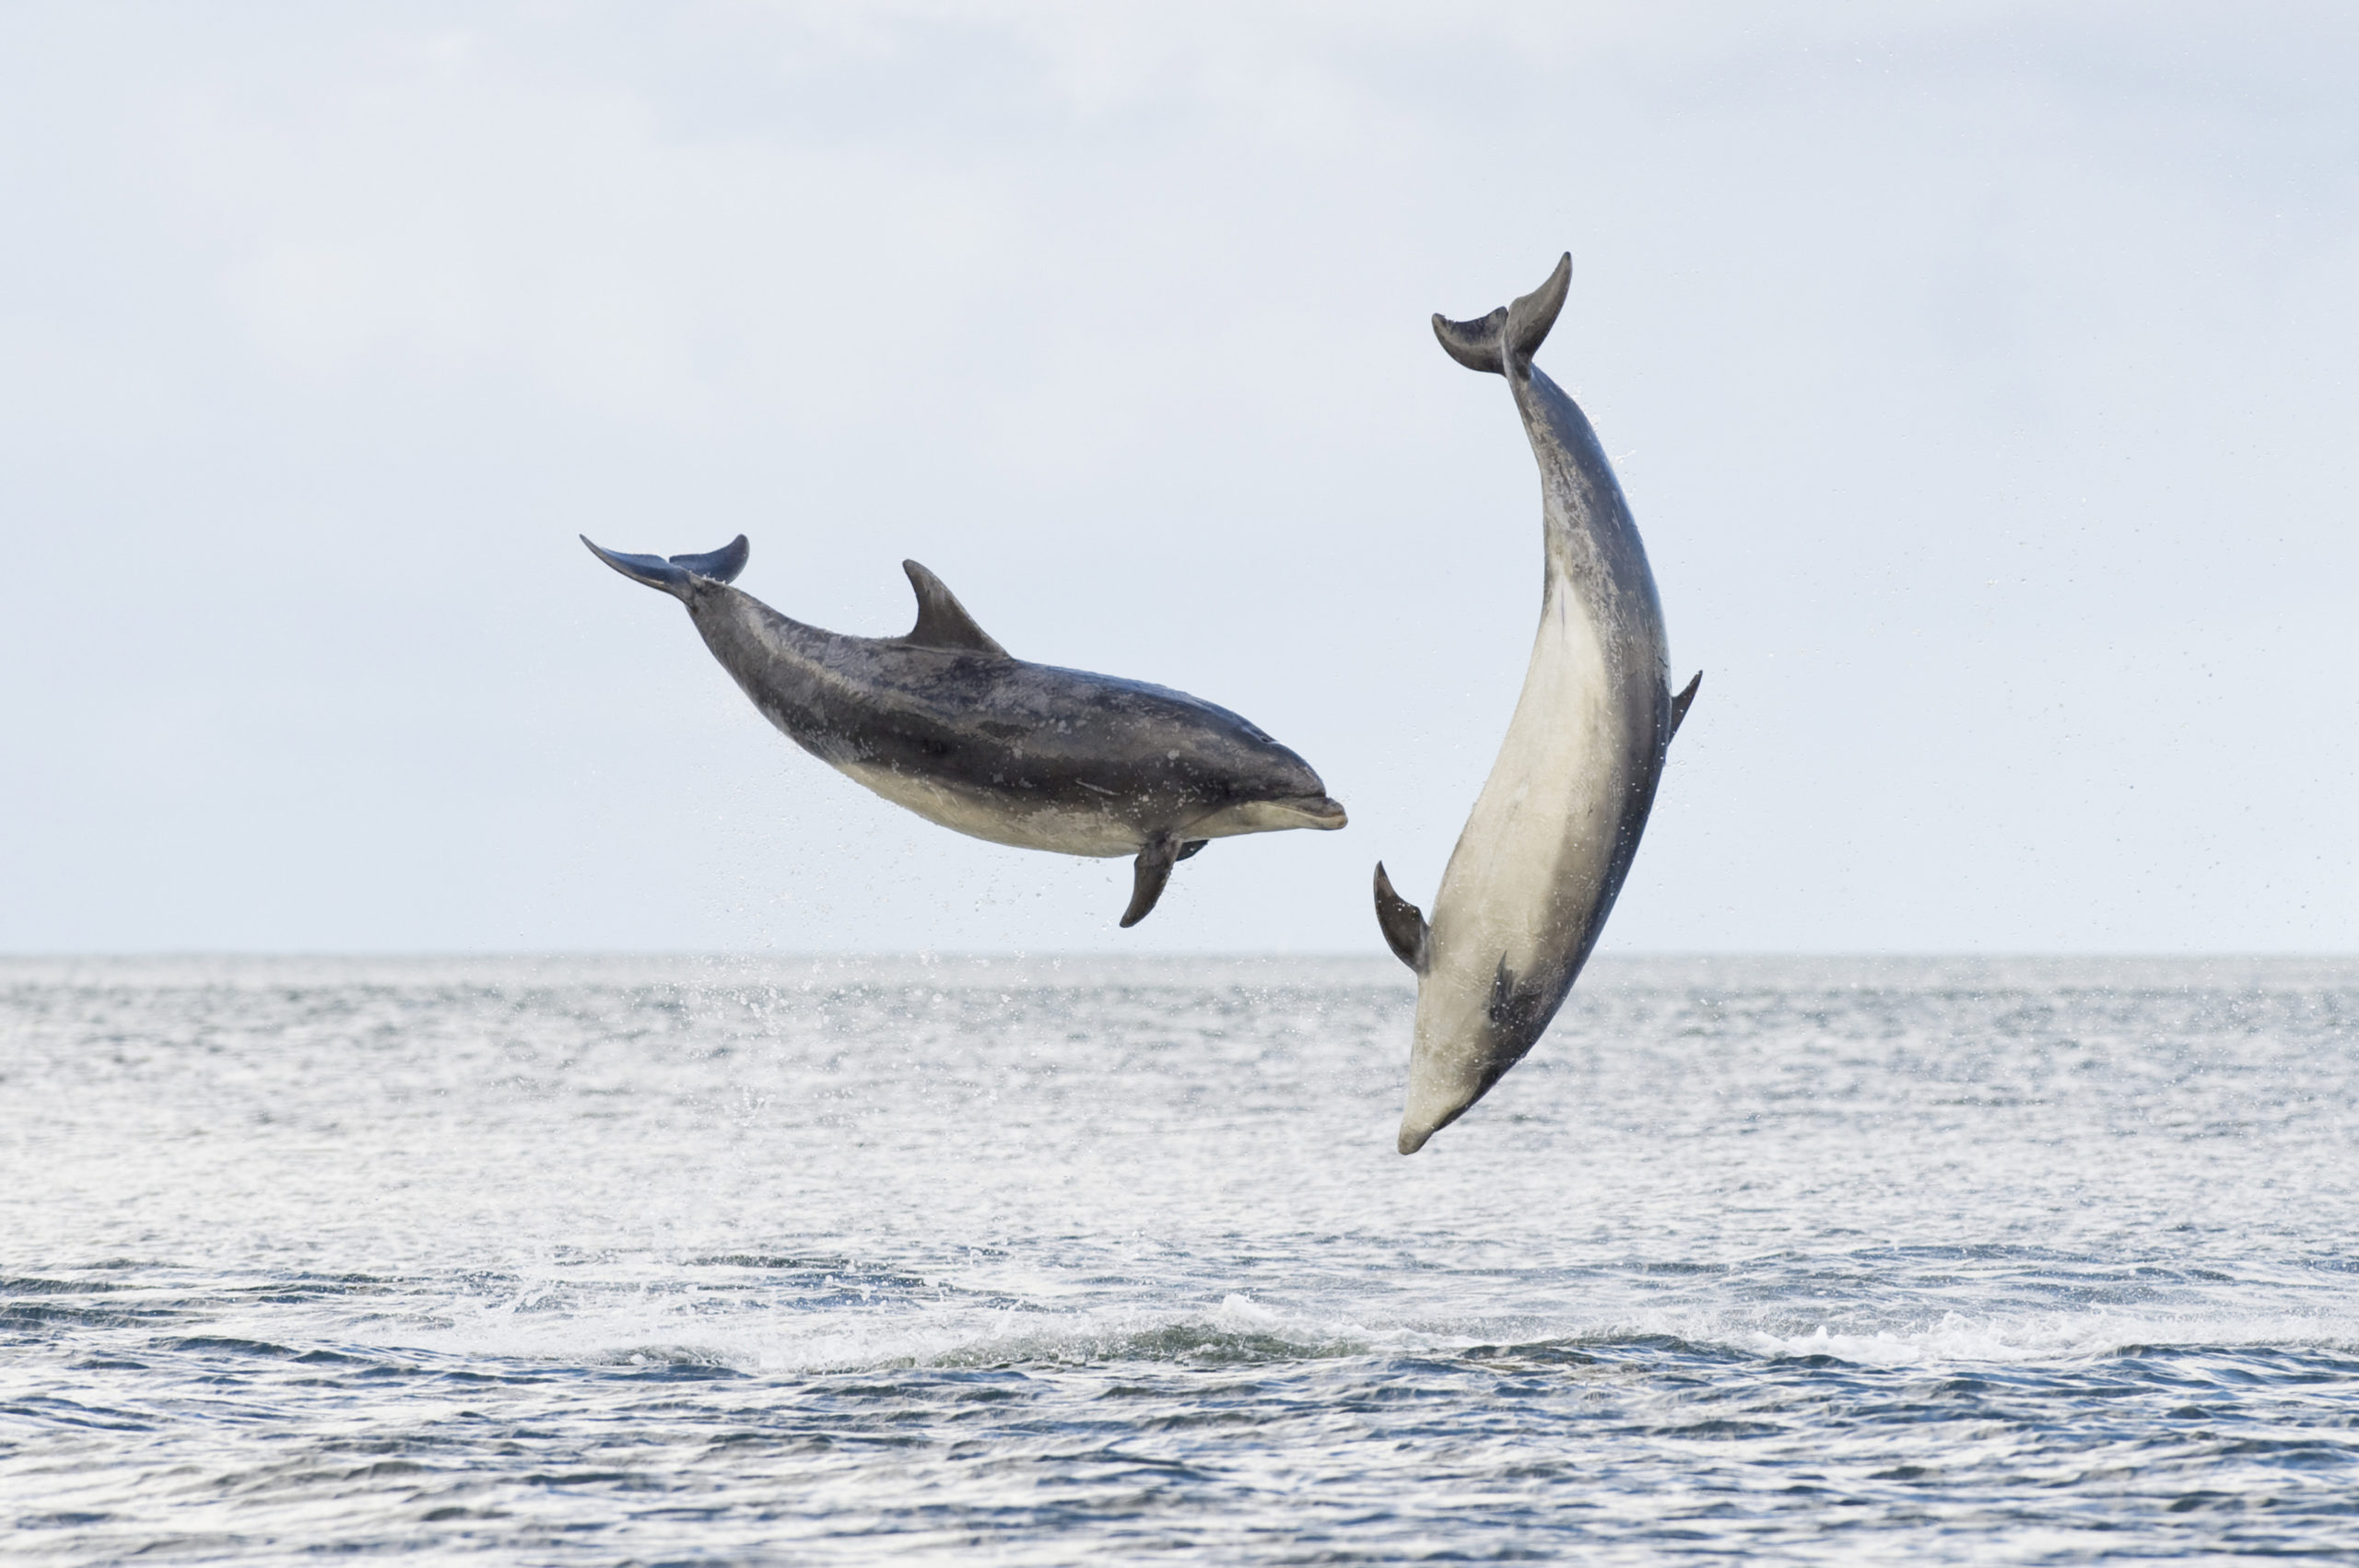 Bottlenose dolphins breaching at Chanonry Point, Black Isle on the Moray Firth